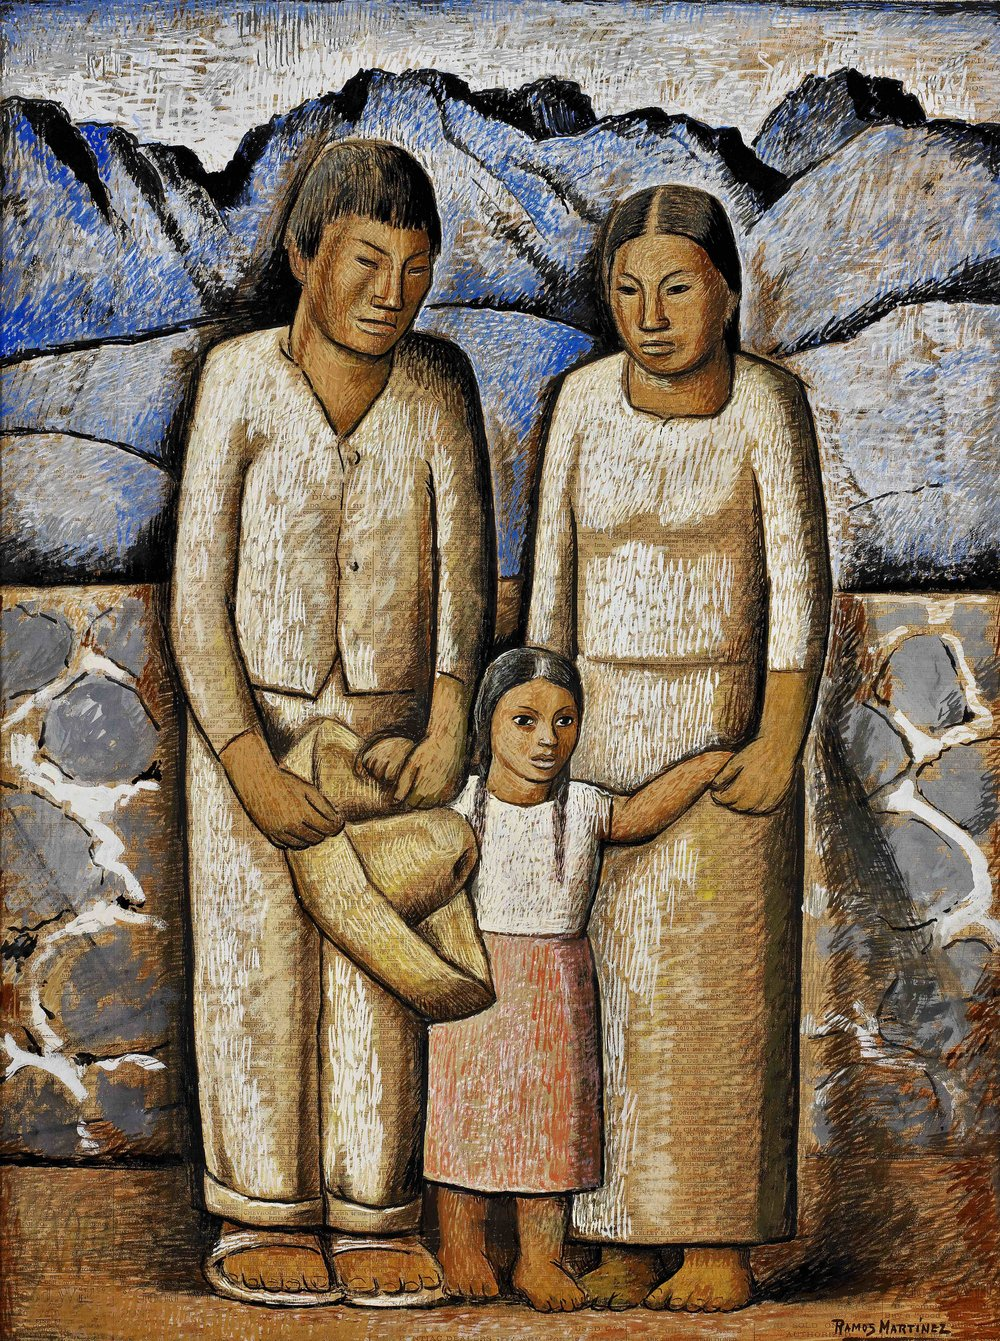 La Familia / The Family  ca. 1936 tempera on newsprint / temple sobre papel periódico (Los Angeles Times, March 21, 1937) 21 x 16 inches; 53.3 x 40.6 centímetros Private collection